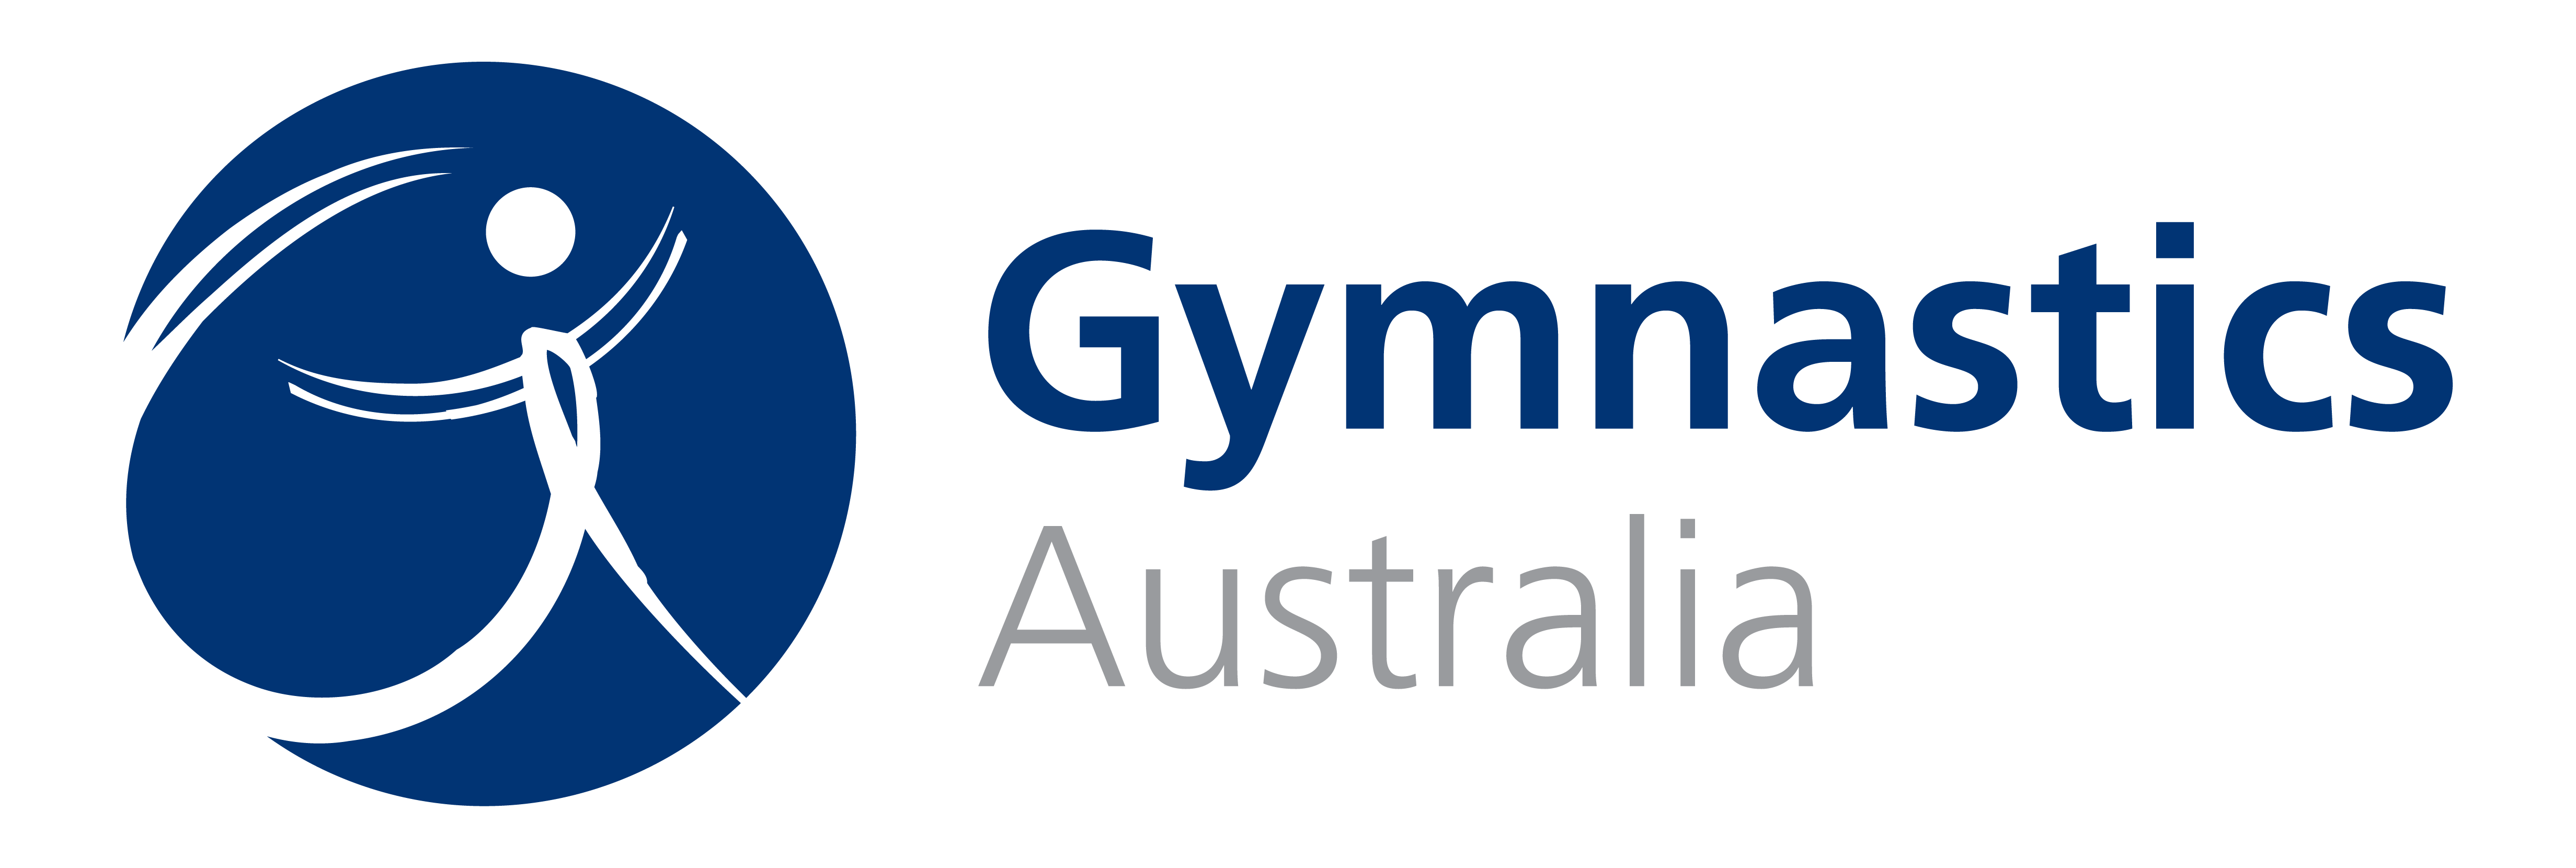 949a502ac466 /images/GA%20News/GA%20Logo%20horizontal%20colour%20-%20transparent%20background-01.png.  Gymnastics Australia Board Updates